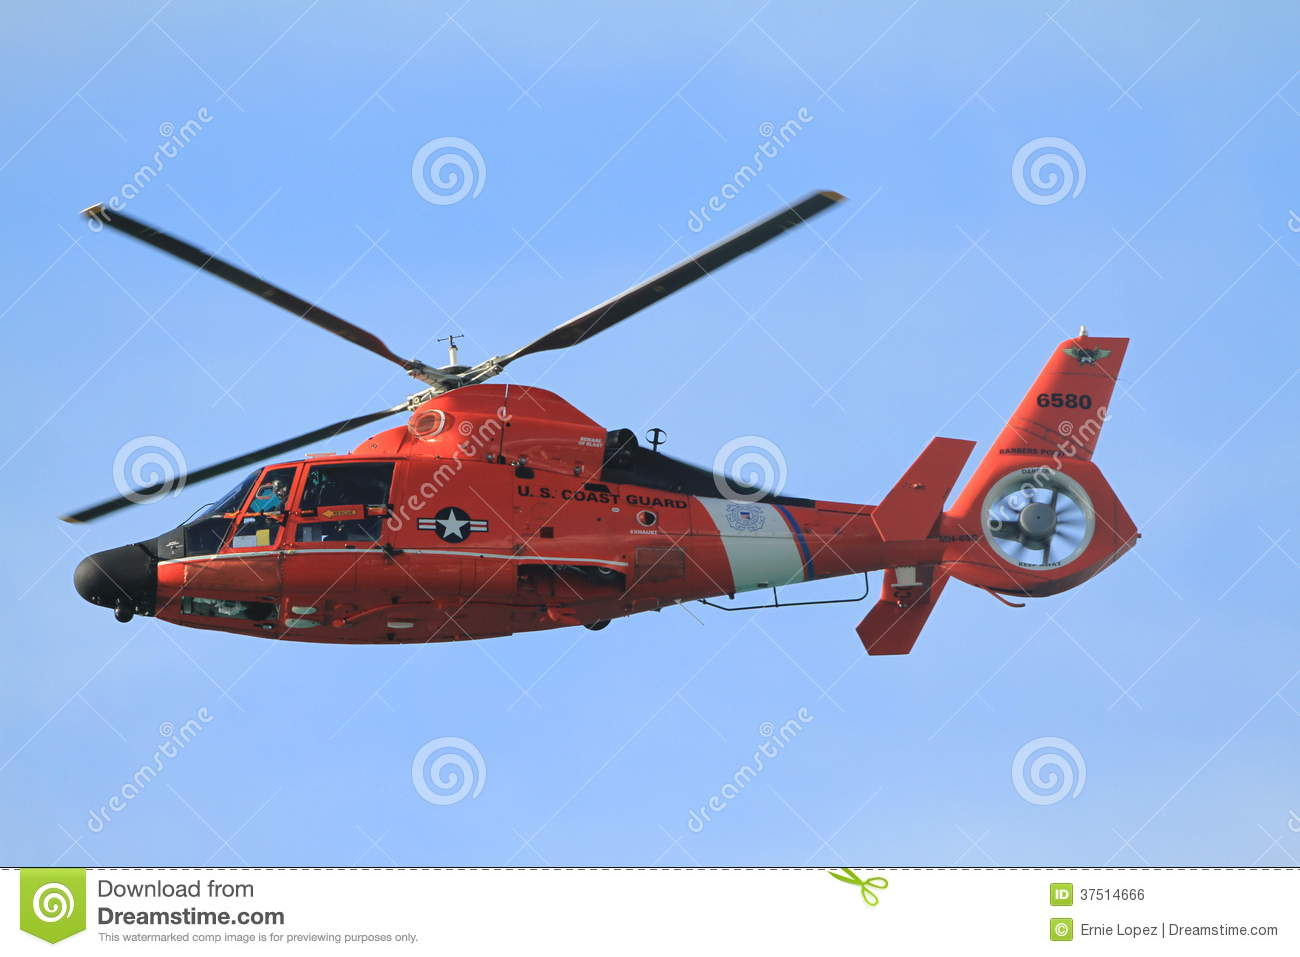 irish coast guard helicopter with Royalty Free Stock Image Hh Dolphin Us Coast Guard Helicopter Honolulu Jan U S Flies Over Waikiki Beach Routine Run Along Bea Honolulu Hi Image37514666 on Sikorsky s 92 in addition Winter Wonderland Wallpaper besides Ebola tshirts additionally Funny your girlfriend my girlfriend cool tshirt 235144636867319228 furthermore Major Air Sea Rescue Plucks Thirty Volunteers Tall Ship Astrid Runs Aground Rough Weather.